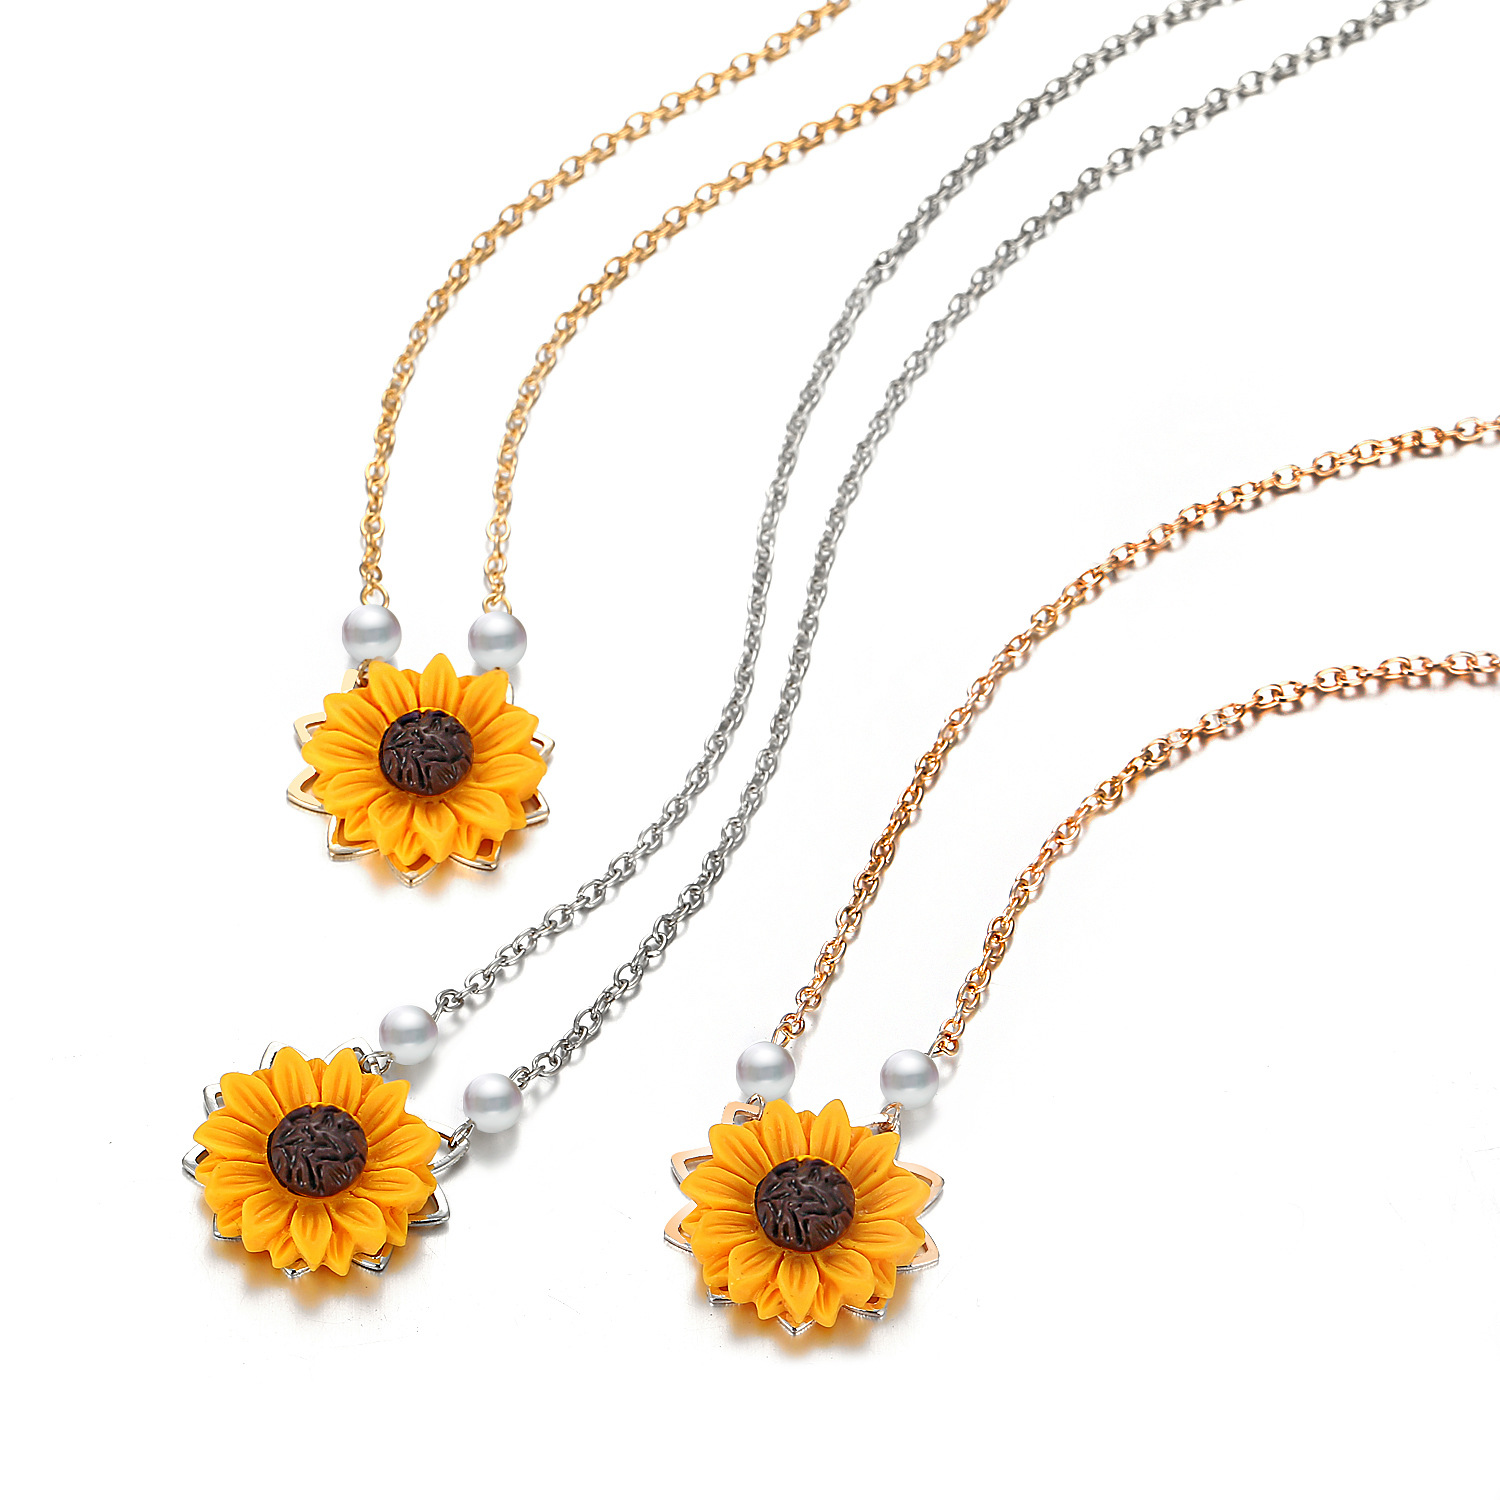 Creative Fashion Jewelry Personality Resin Sunflower Necklace Hot Pearl Sweater Chain Water Wave Chain Pendant Necklace